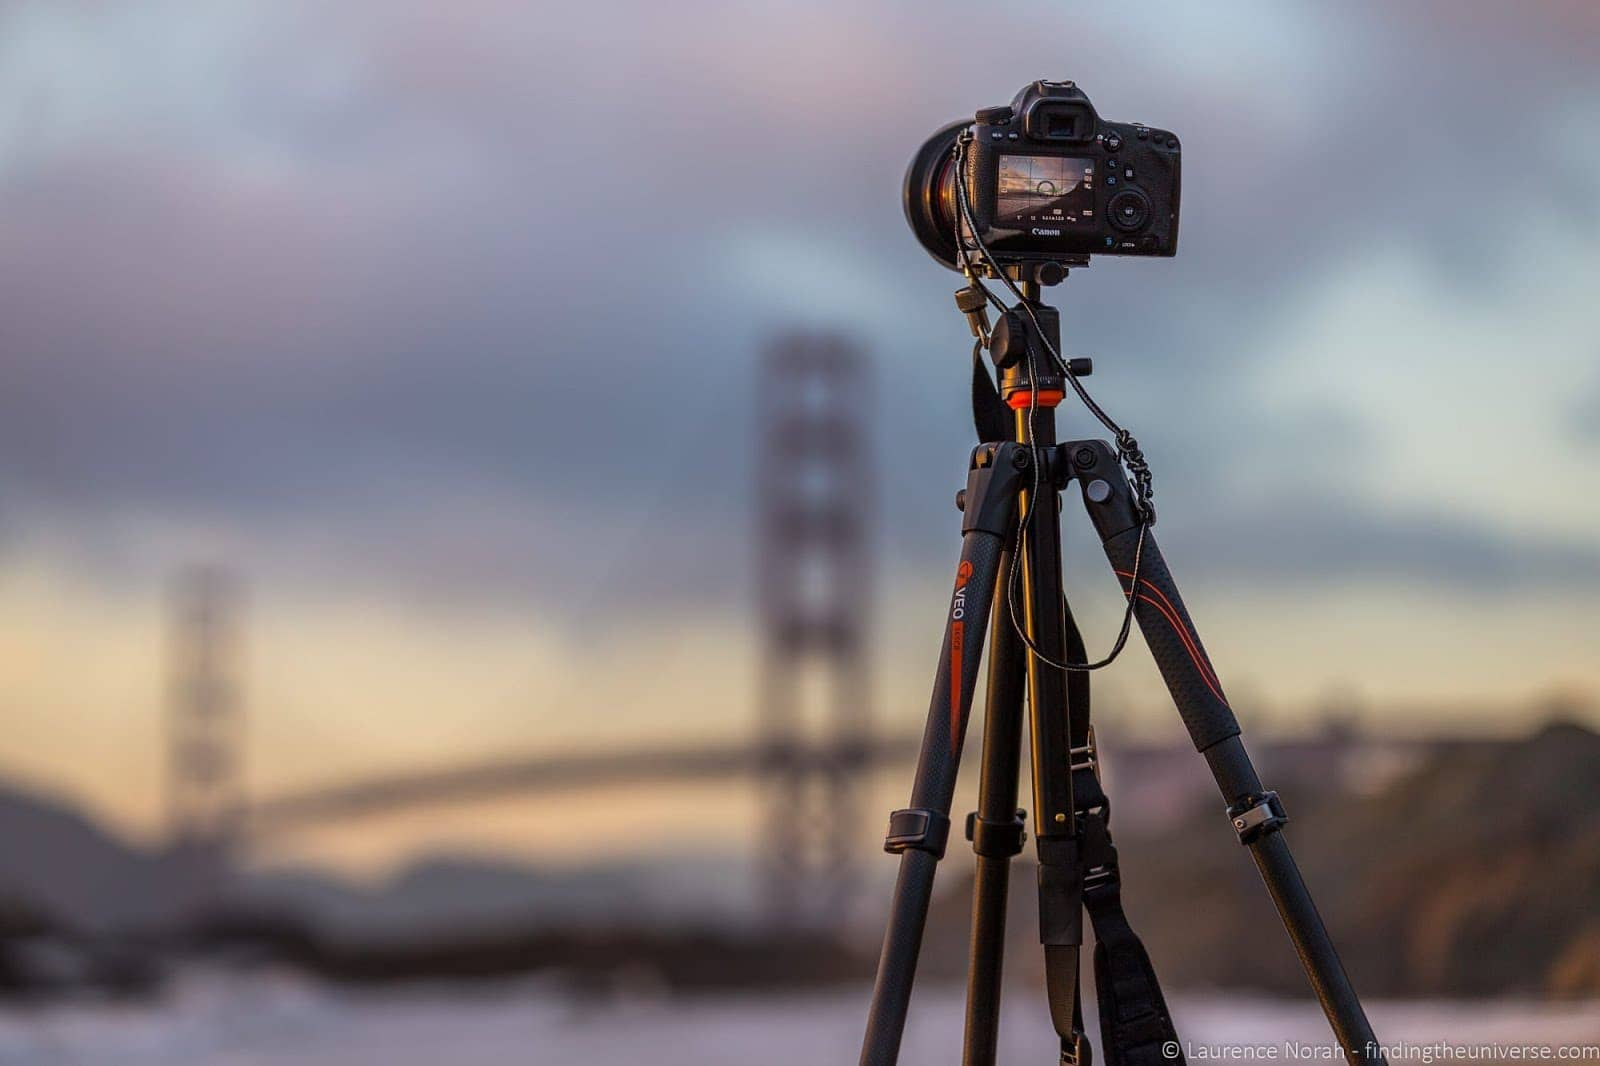 Best equipment for portrait photography Andy Warhol Biography - Biography